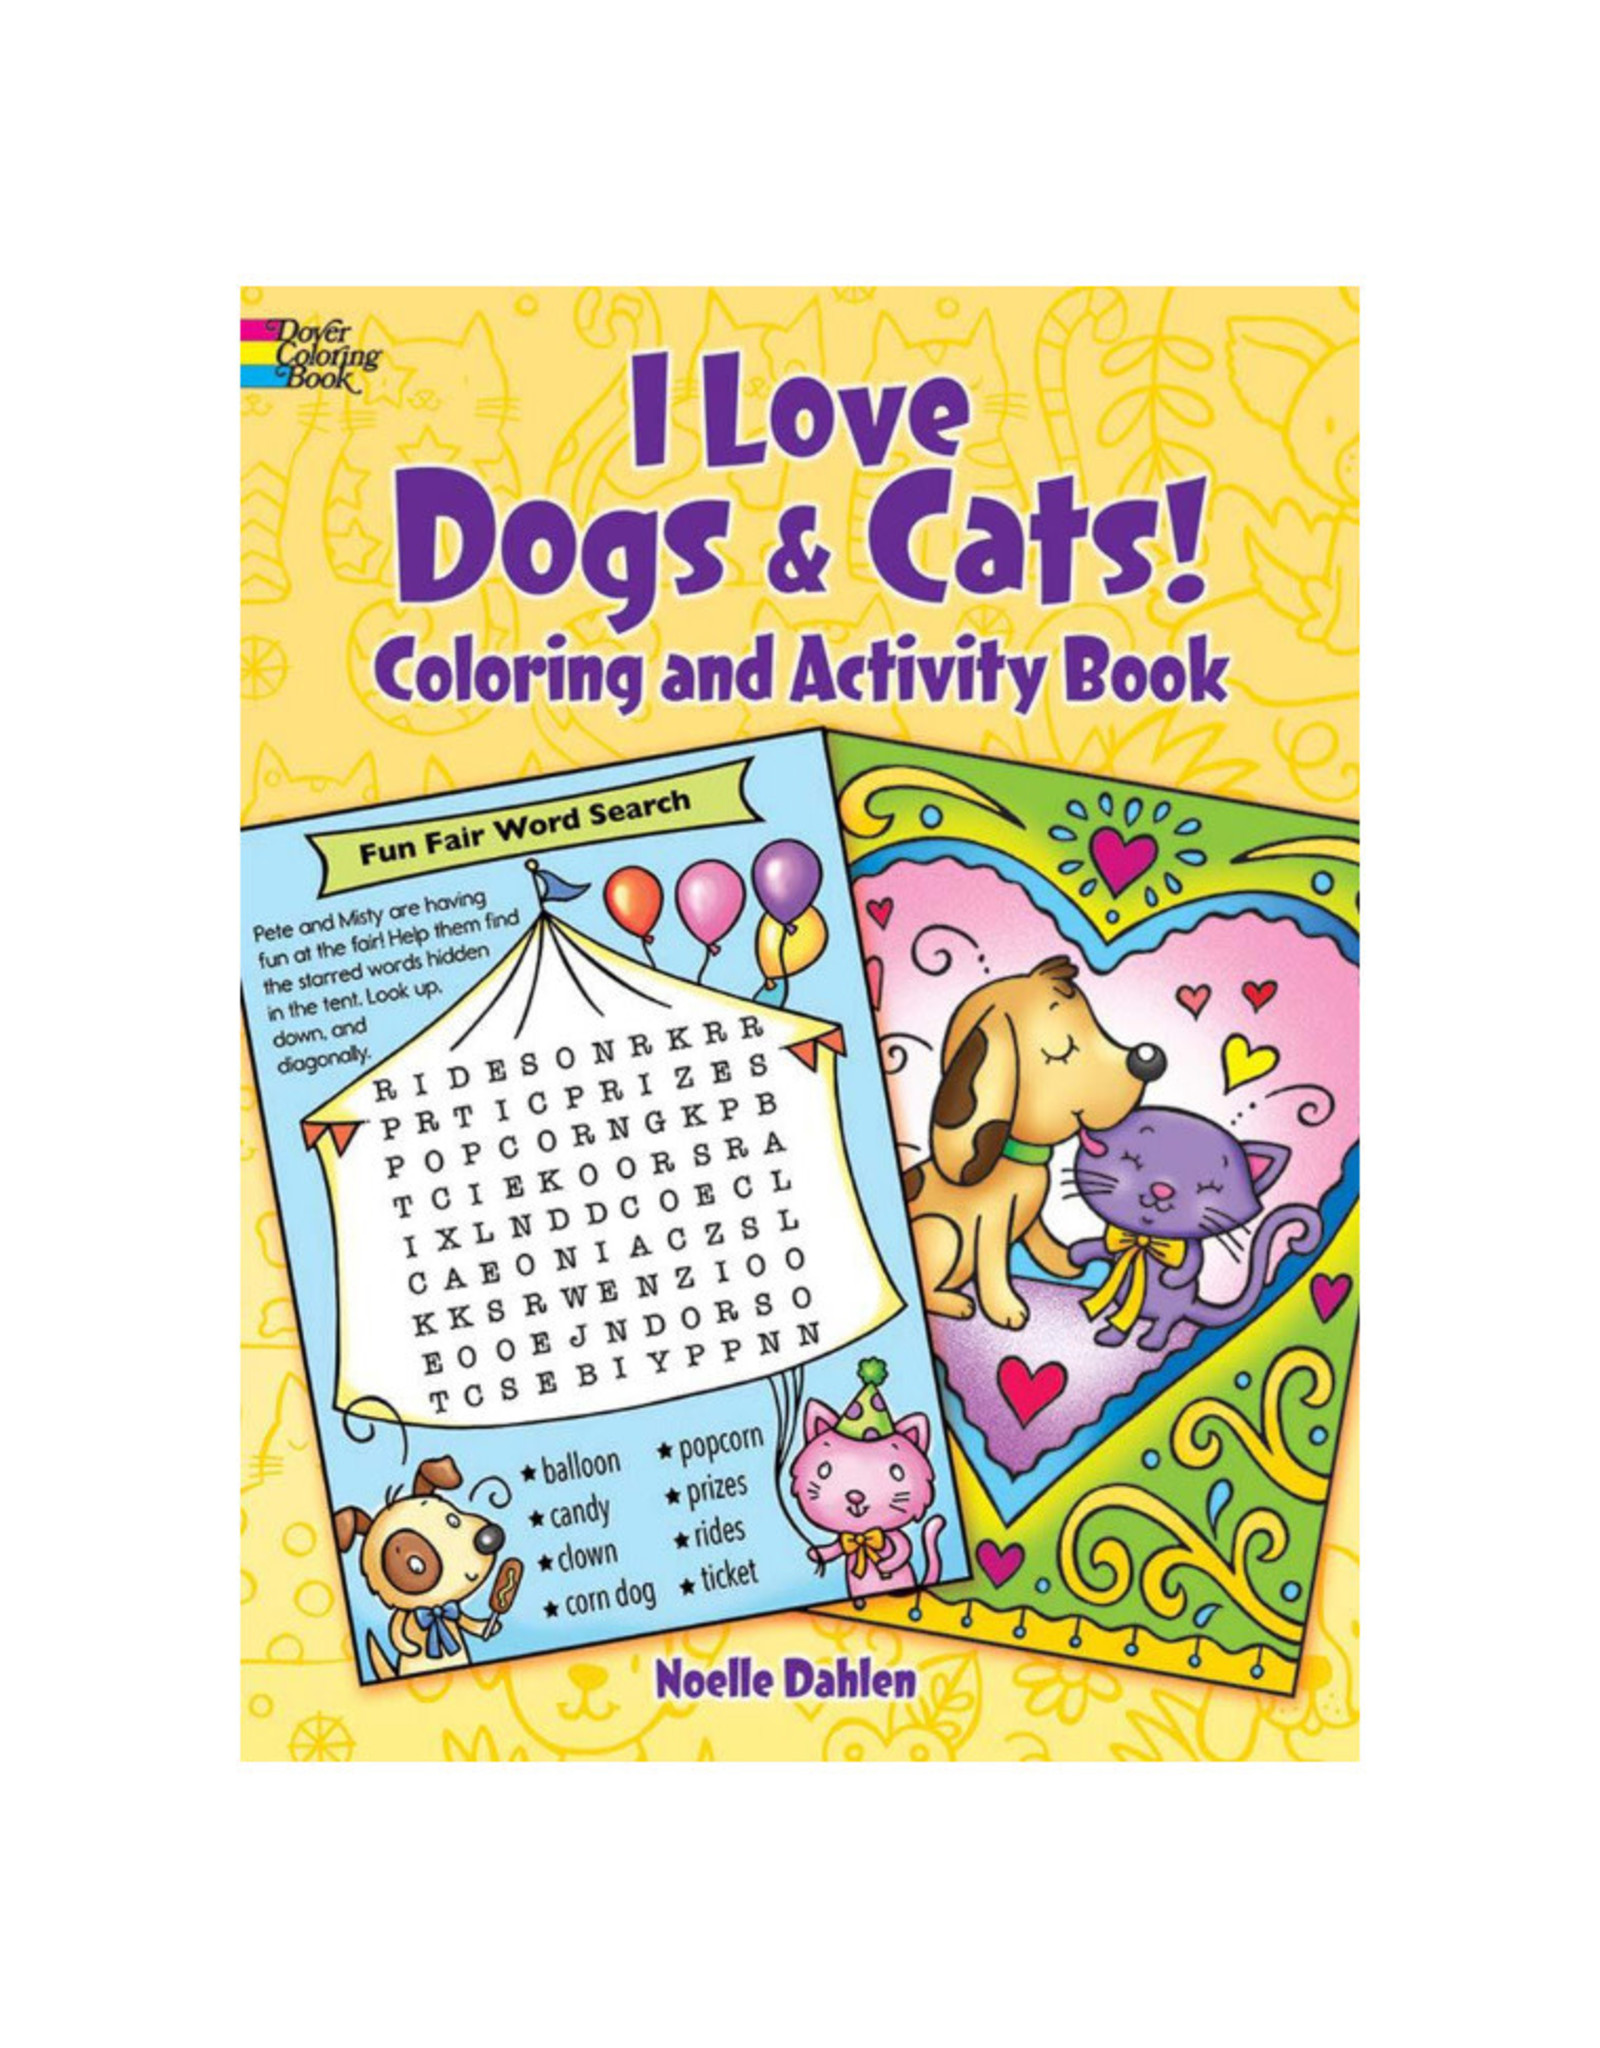 I Love Dogs & Cats Coloring & Activity Book